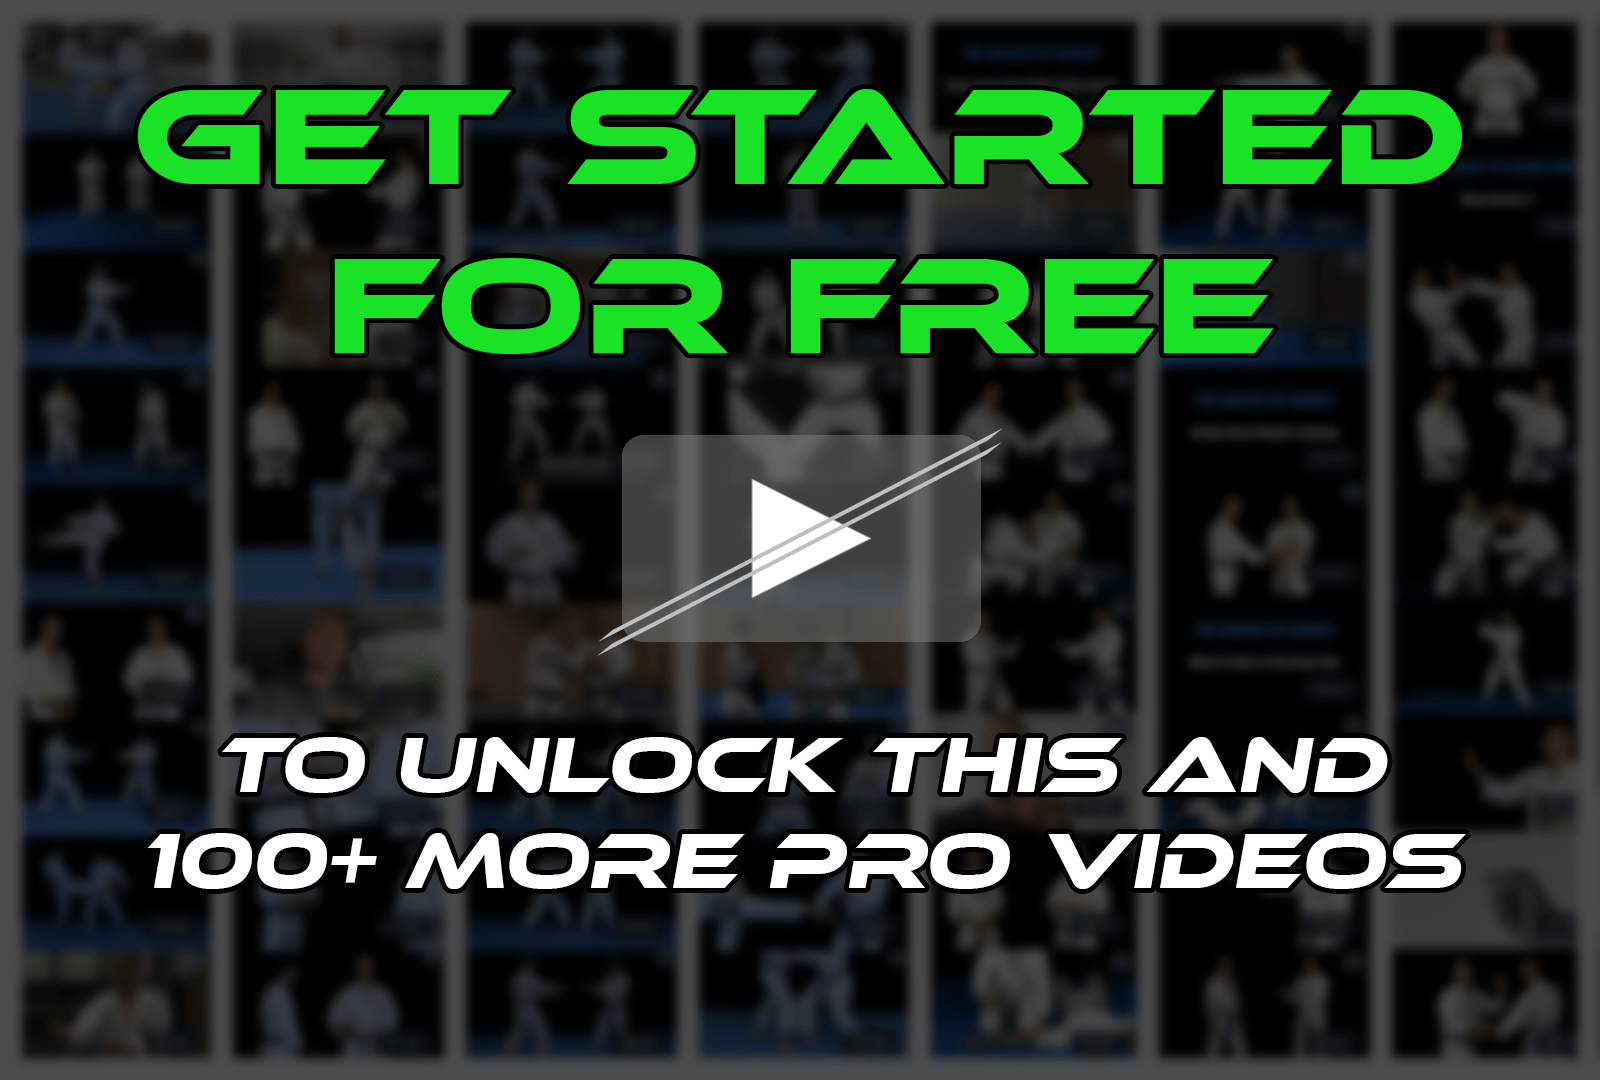 Get Started, It's Free